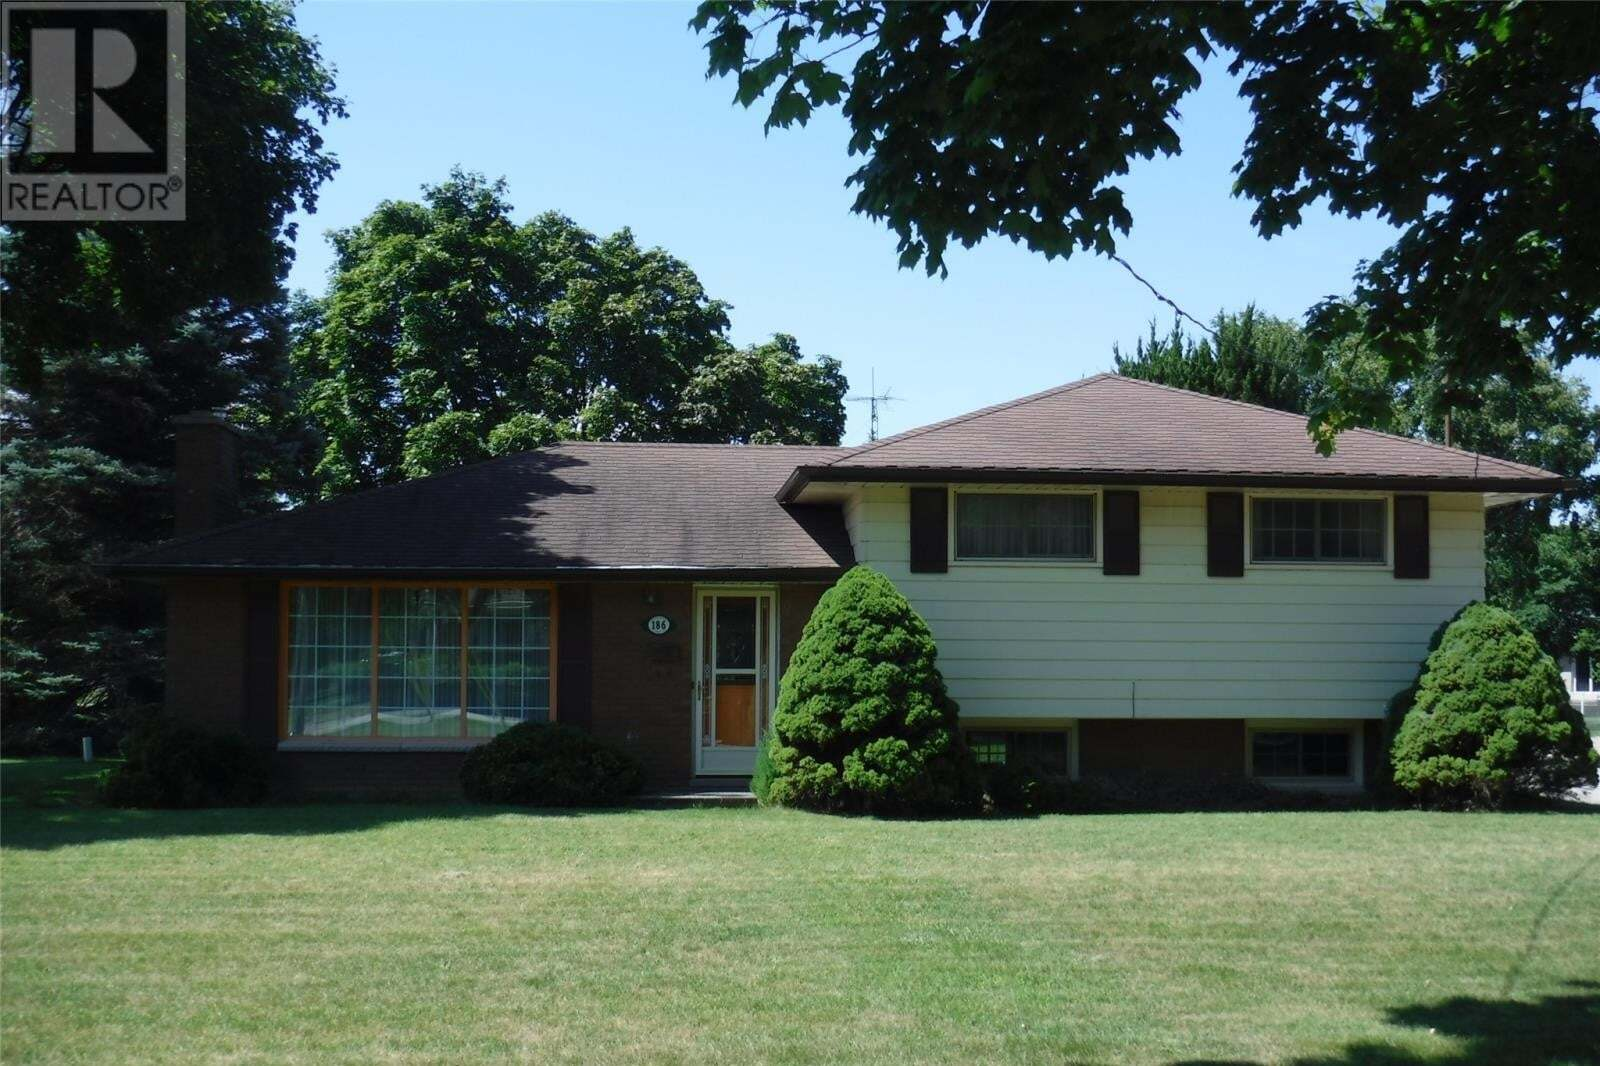 House for sale at 186 Faubert Dr Chatham Ontario - MLS: 20009912